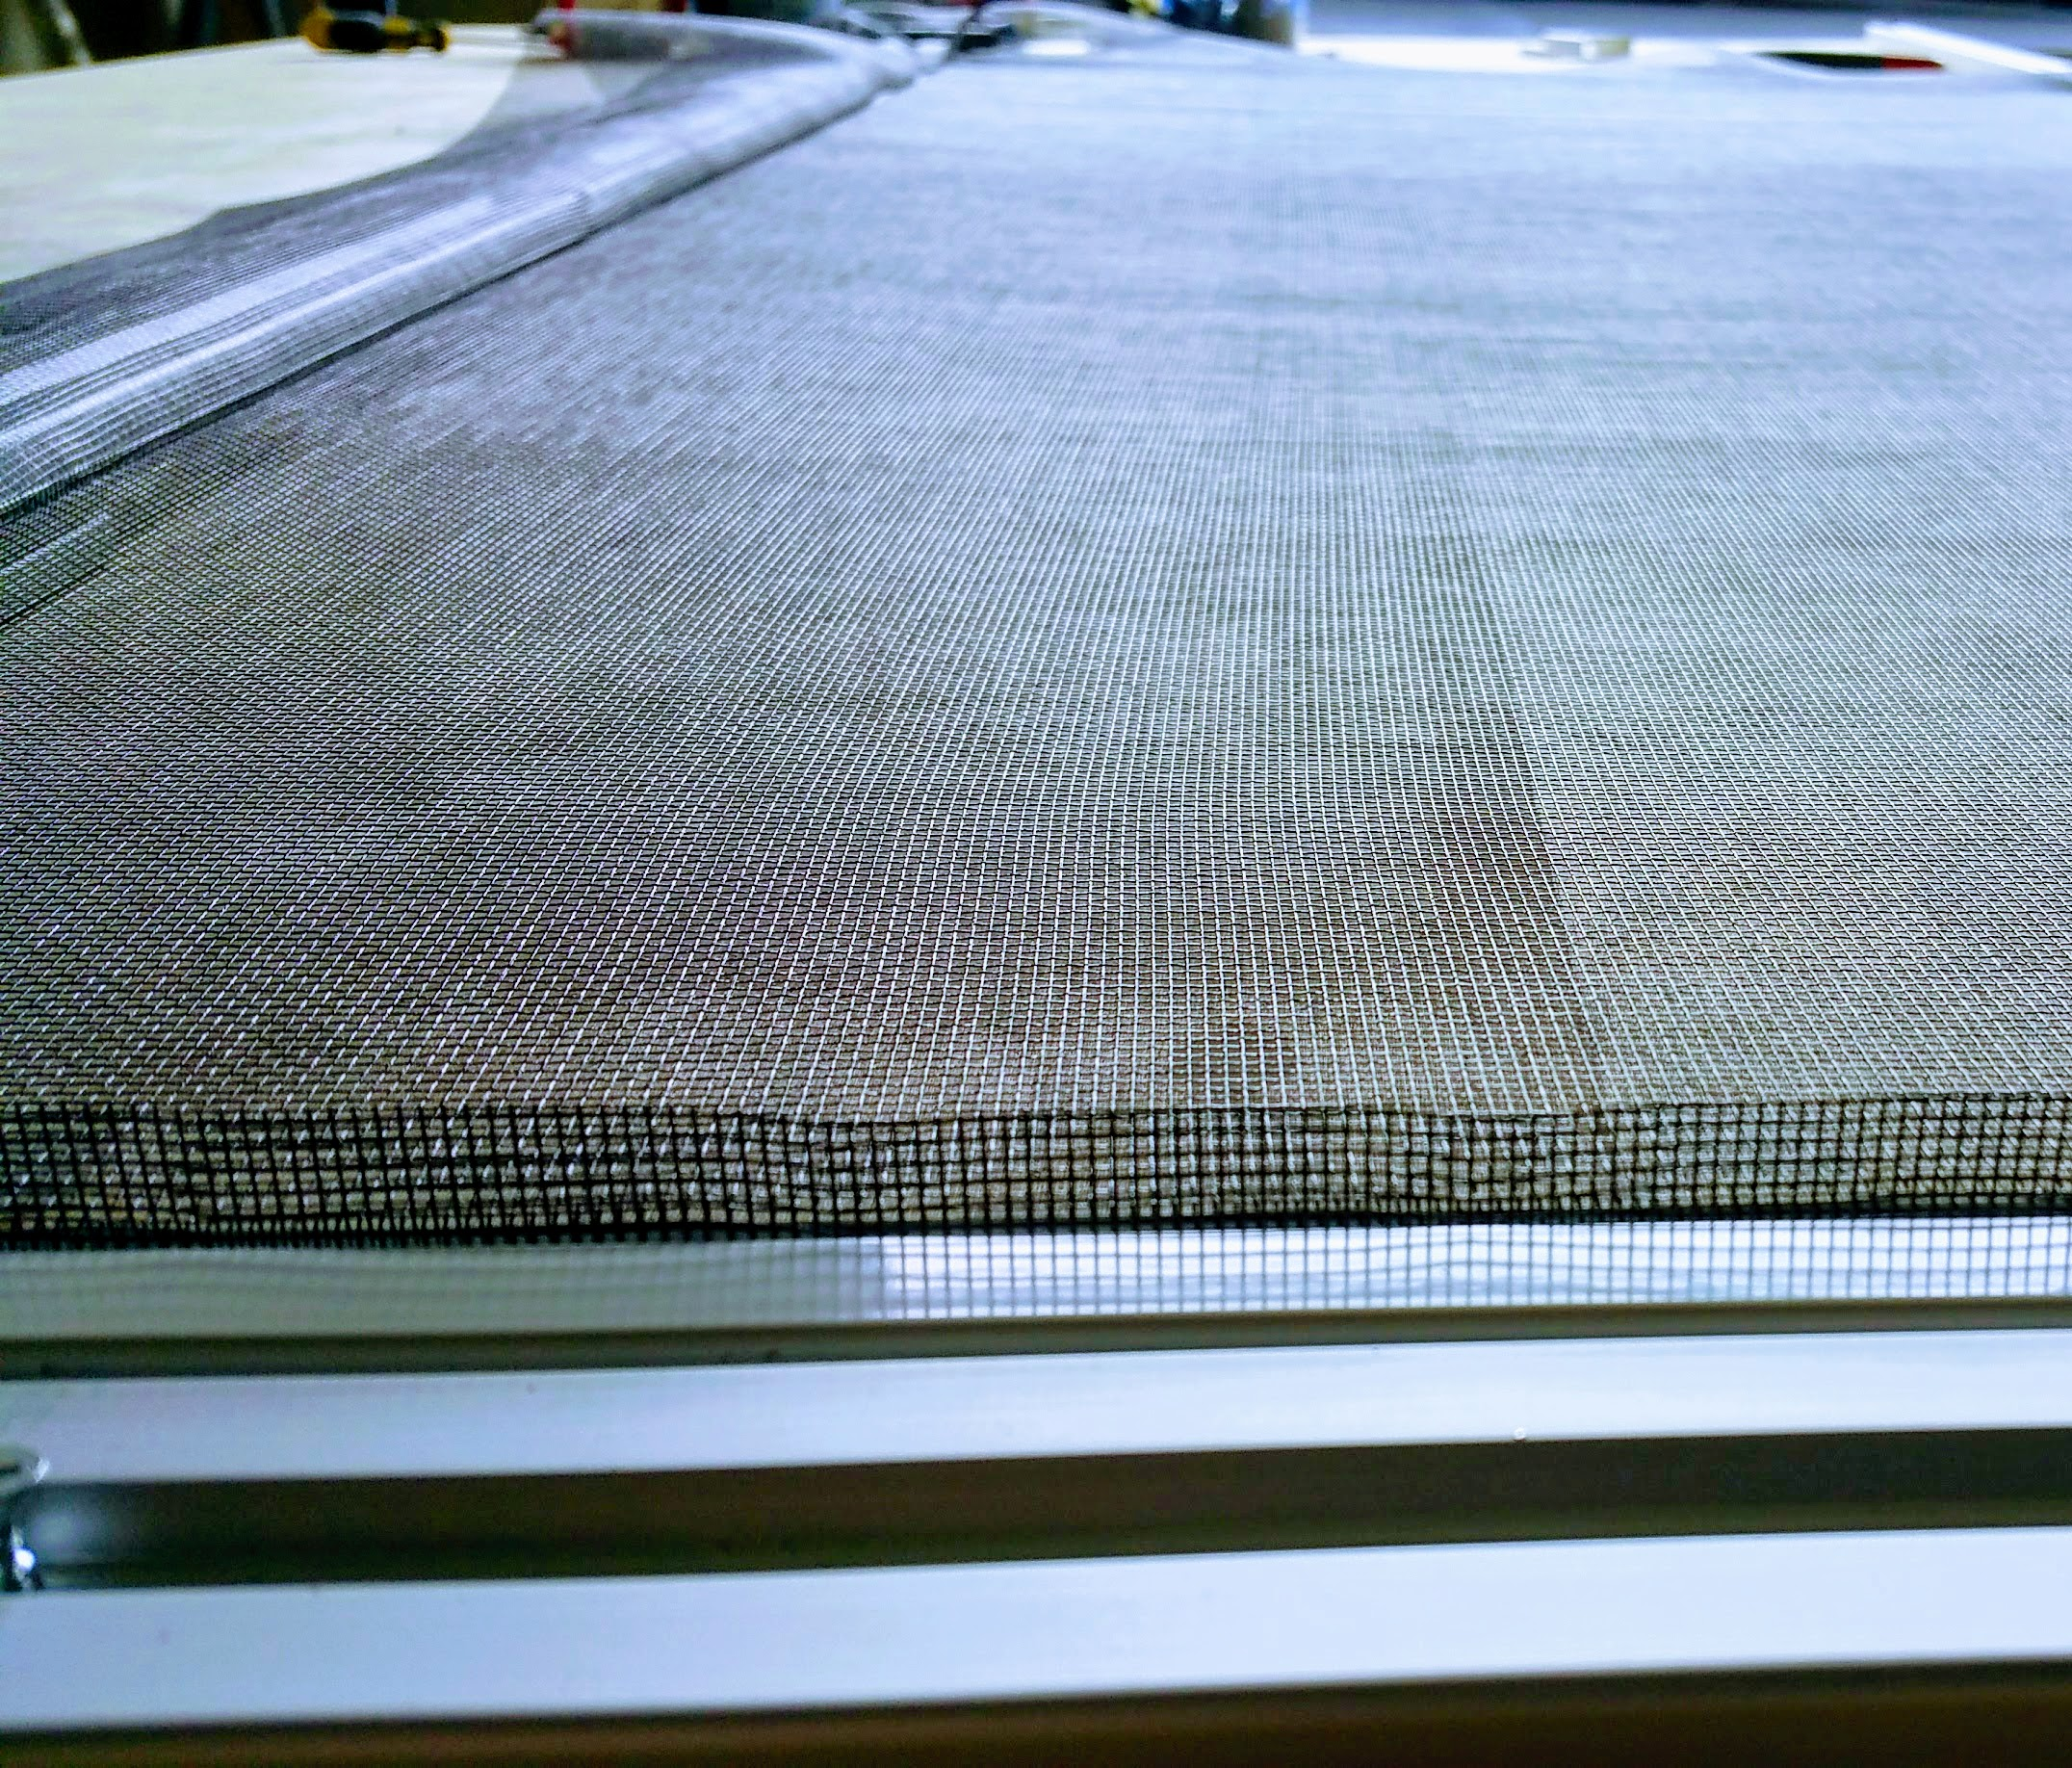 Home replacement window screens portland for Home window screen replacement